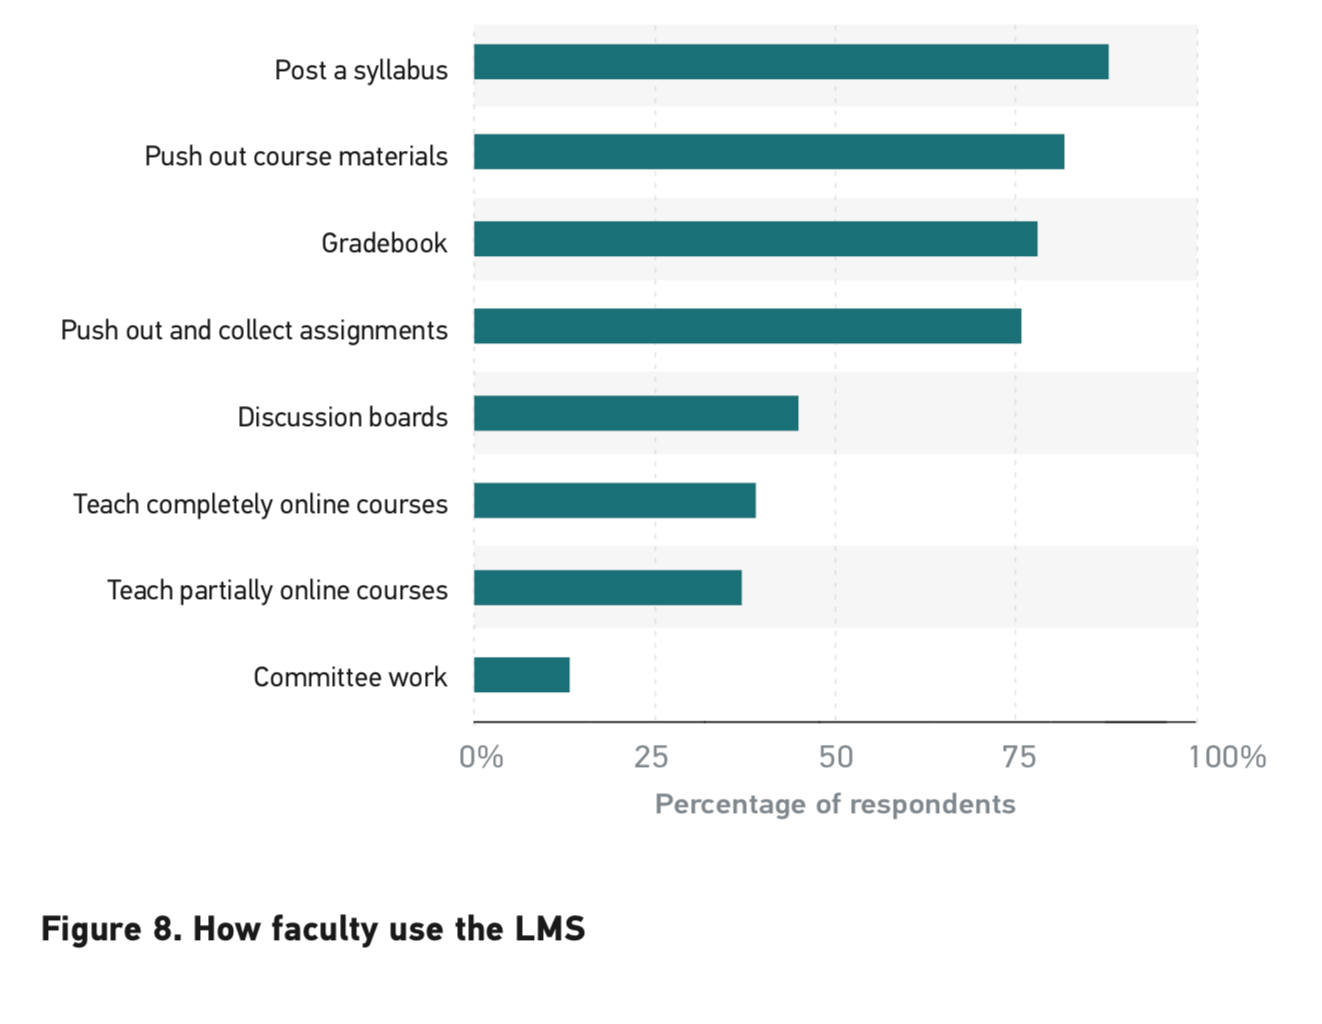 ECAR data on faculty LMS usage